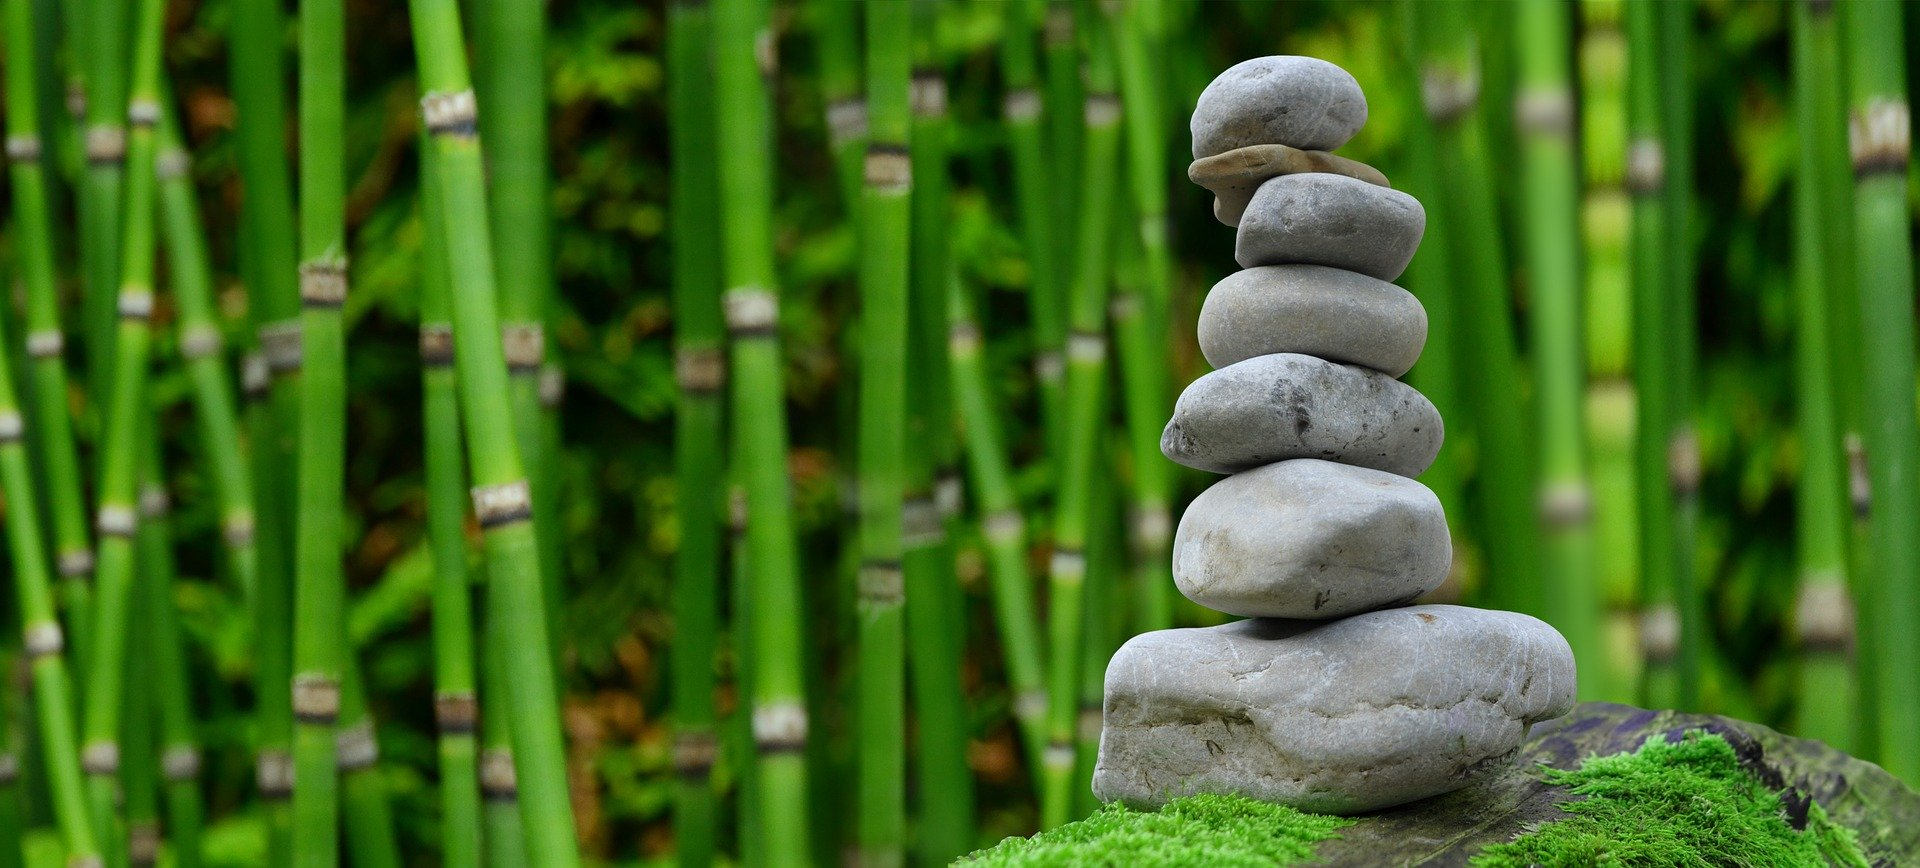 small rocks stacked on top of each other with bamboo in the background.